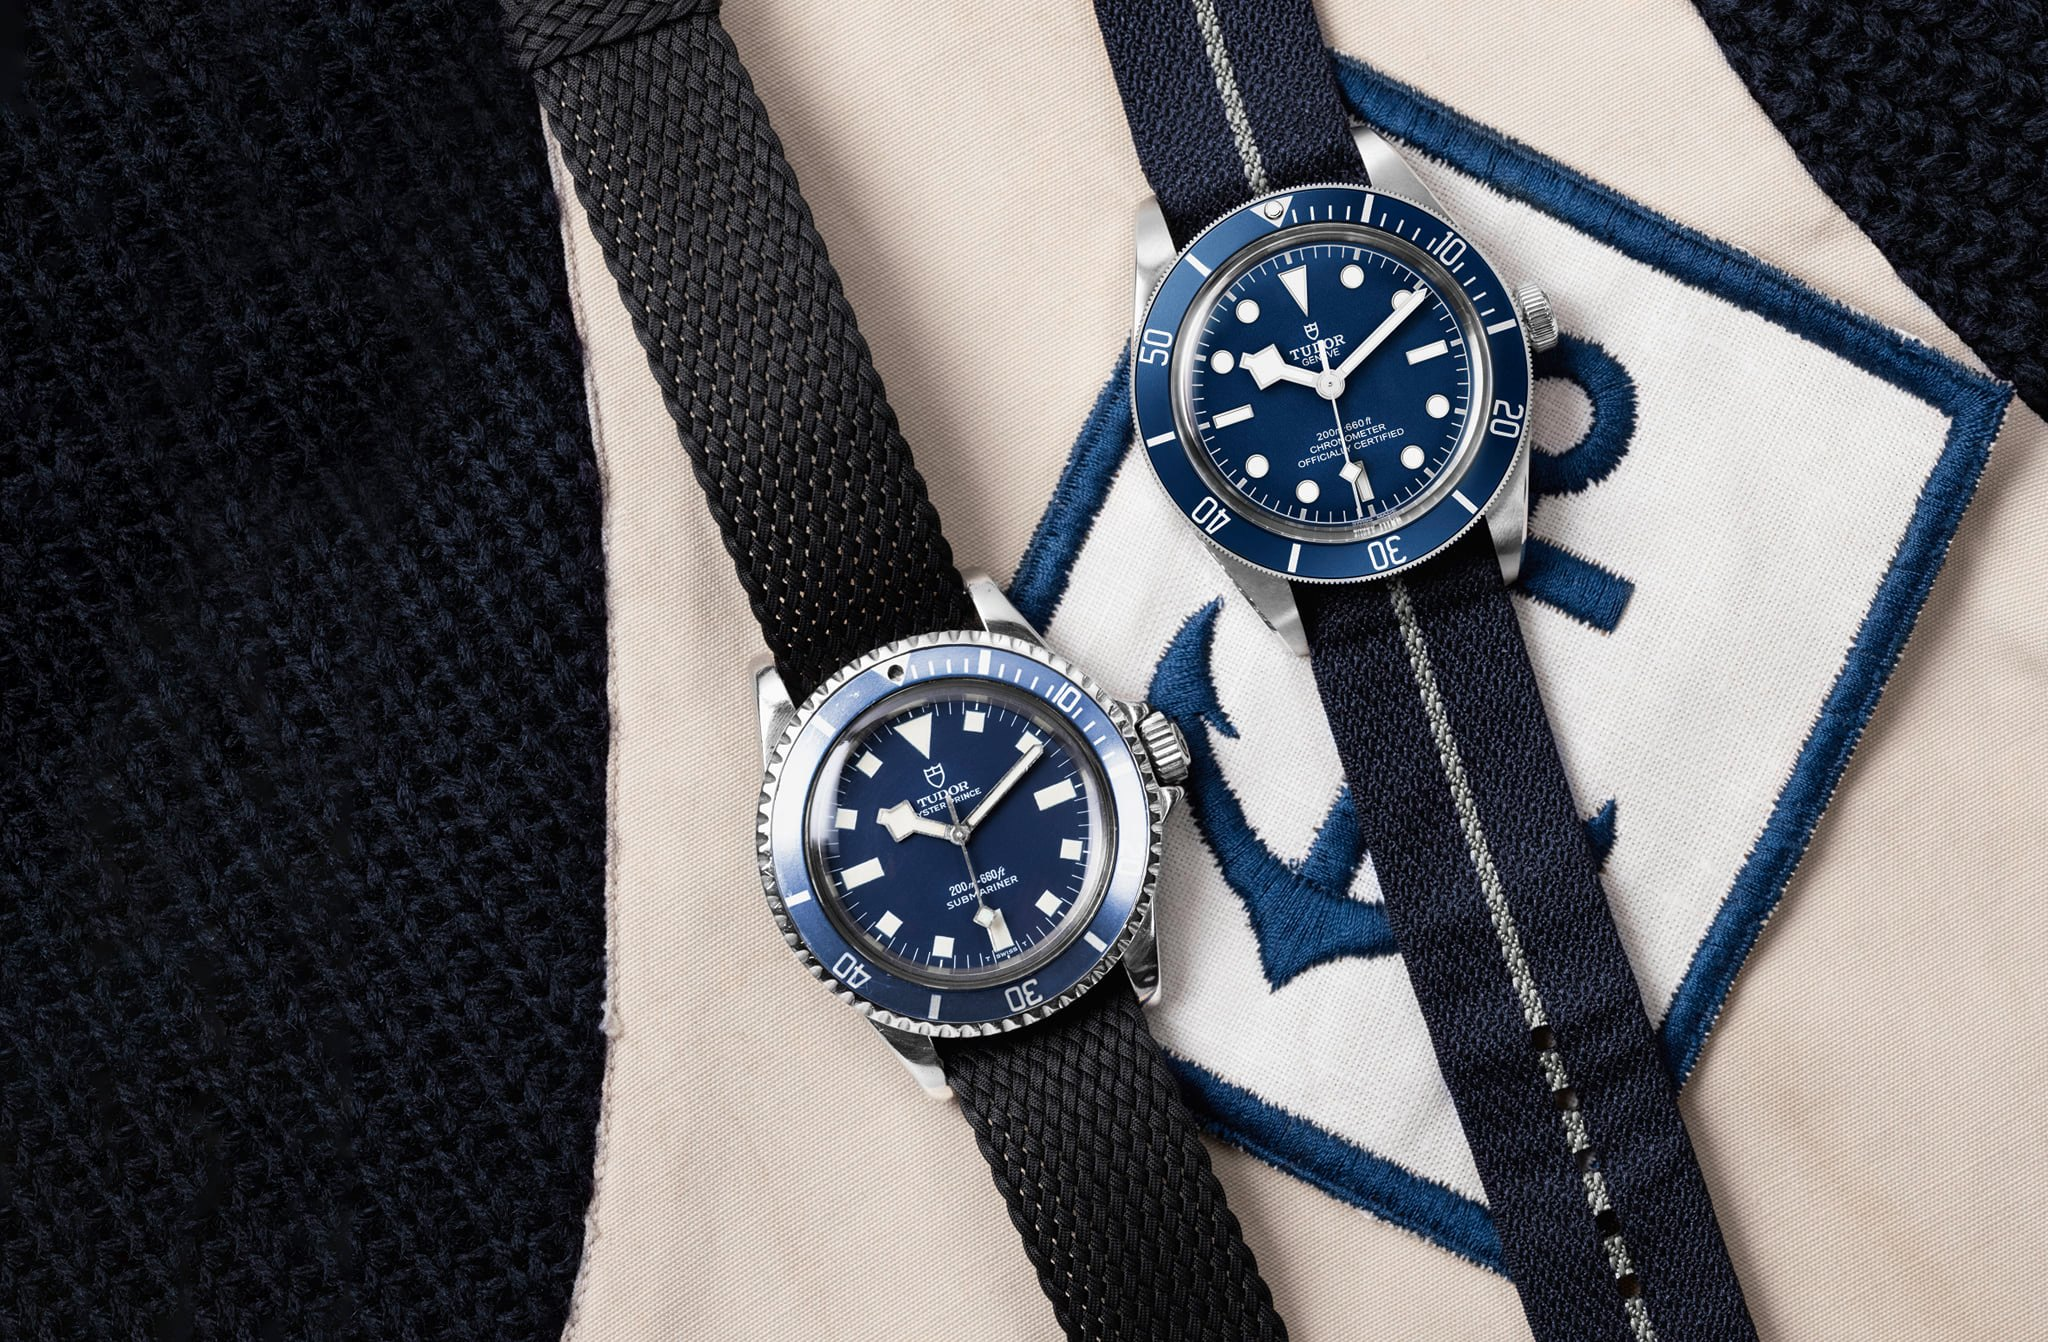 Heritage Naval Tudor - Oyster Prince Submariner y Black Bay Navy Blue